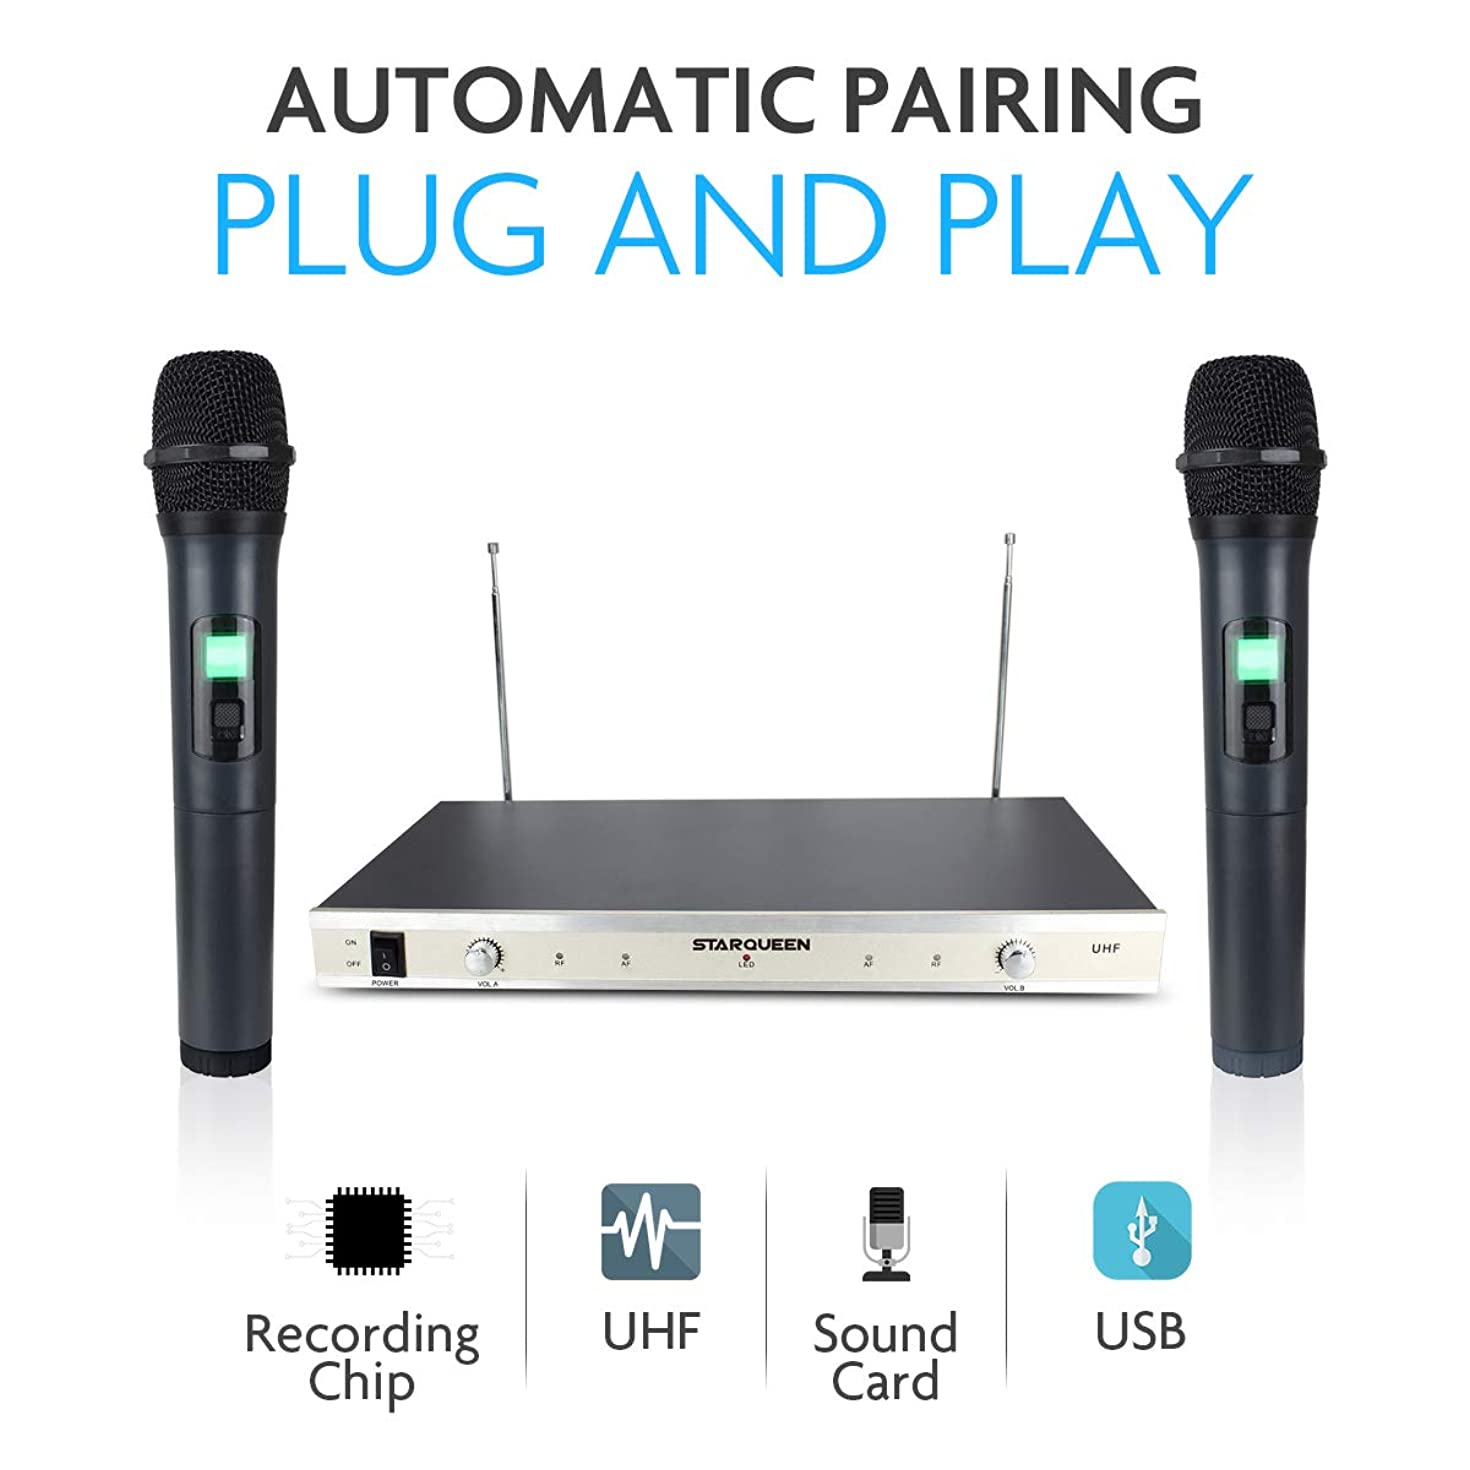 Starqueen Dual UHF Wireless Karaoke Speaker Microphones System for PA Speaker,Computer PC Home KTV,Cordless Handheld Portable Dynamic Mic Battery Powered with LCD Display